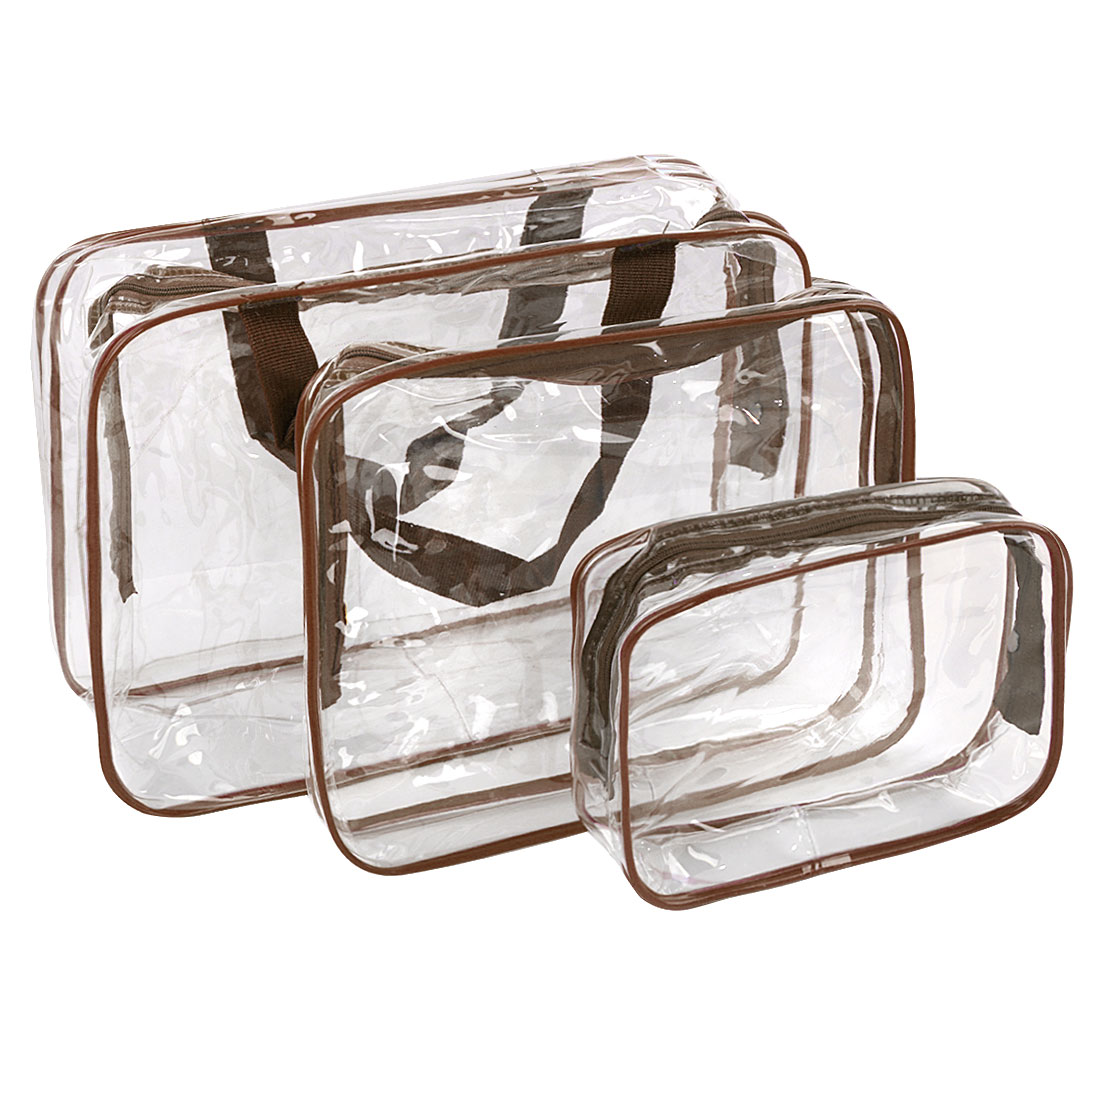 3Pc Clear Travel Toiletry Cosmetic Makeup Bags Organizer Set Case Pouch Purse Brush Holder